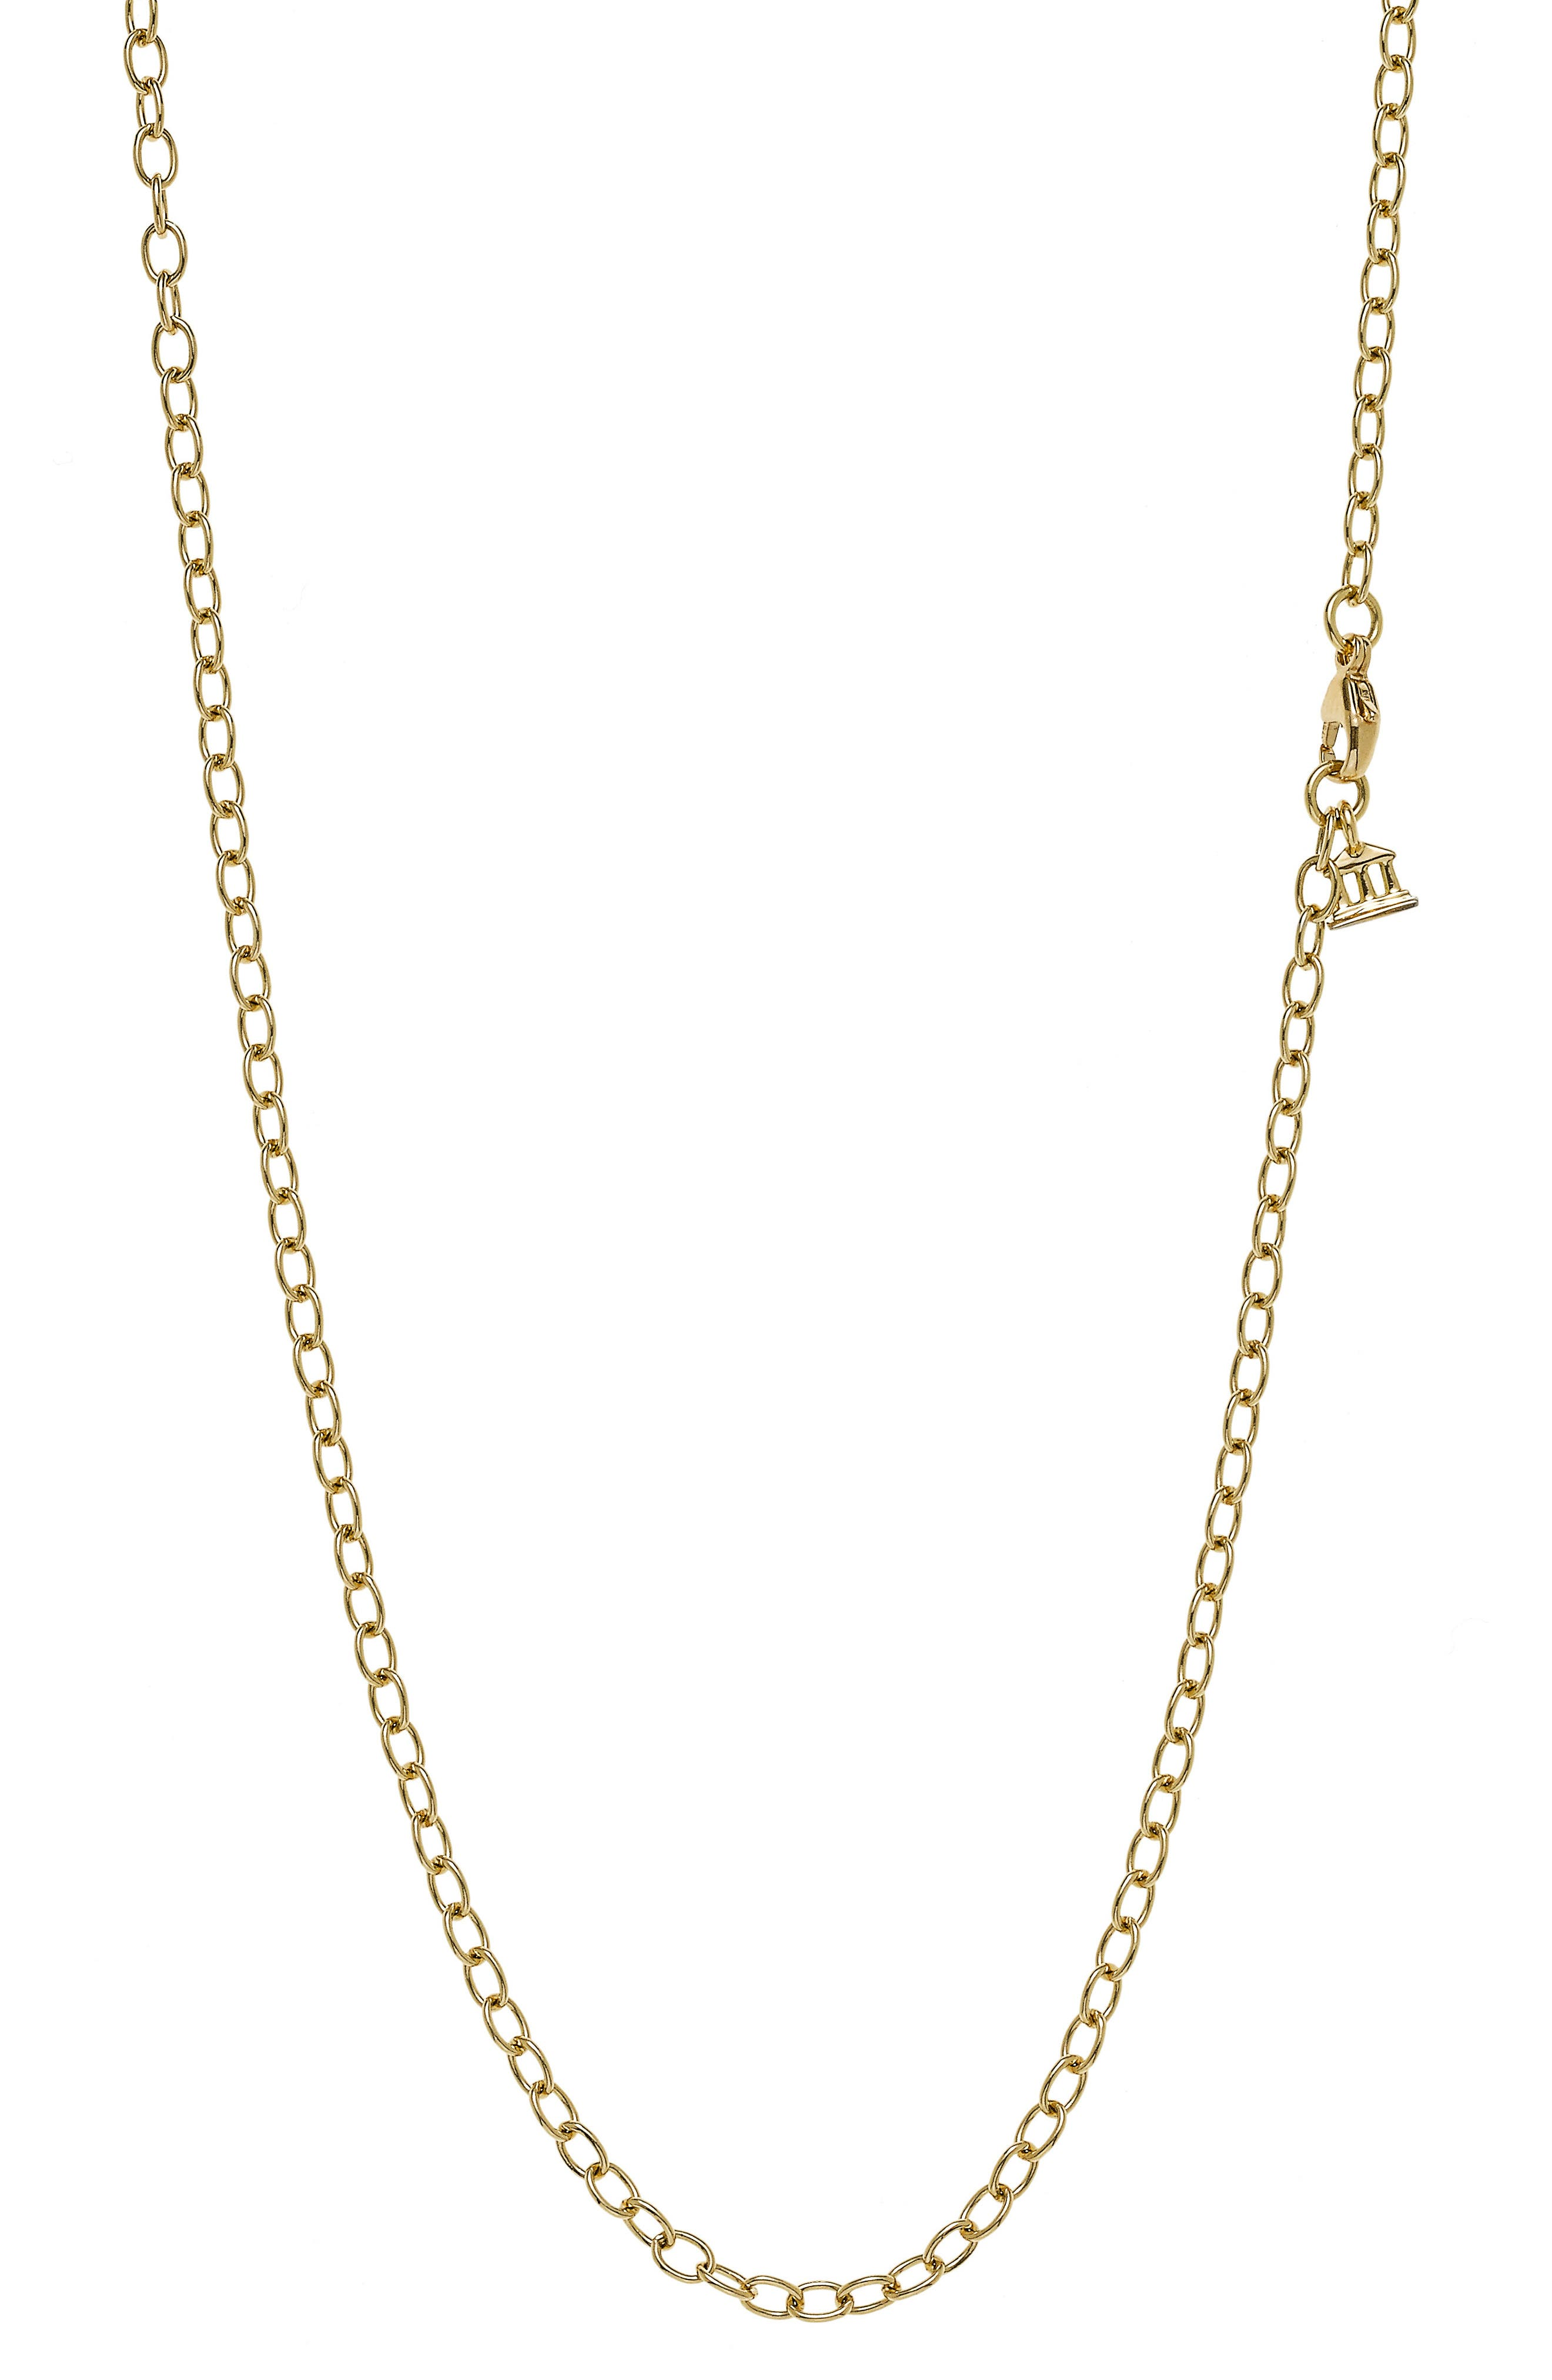 Alternate Image 1 Selected - Temple St. Clair 18-Inch Oval Chain Necklace